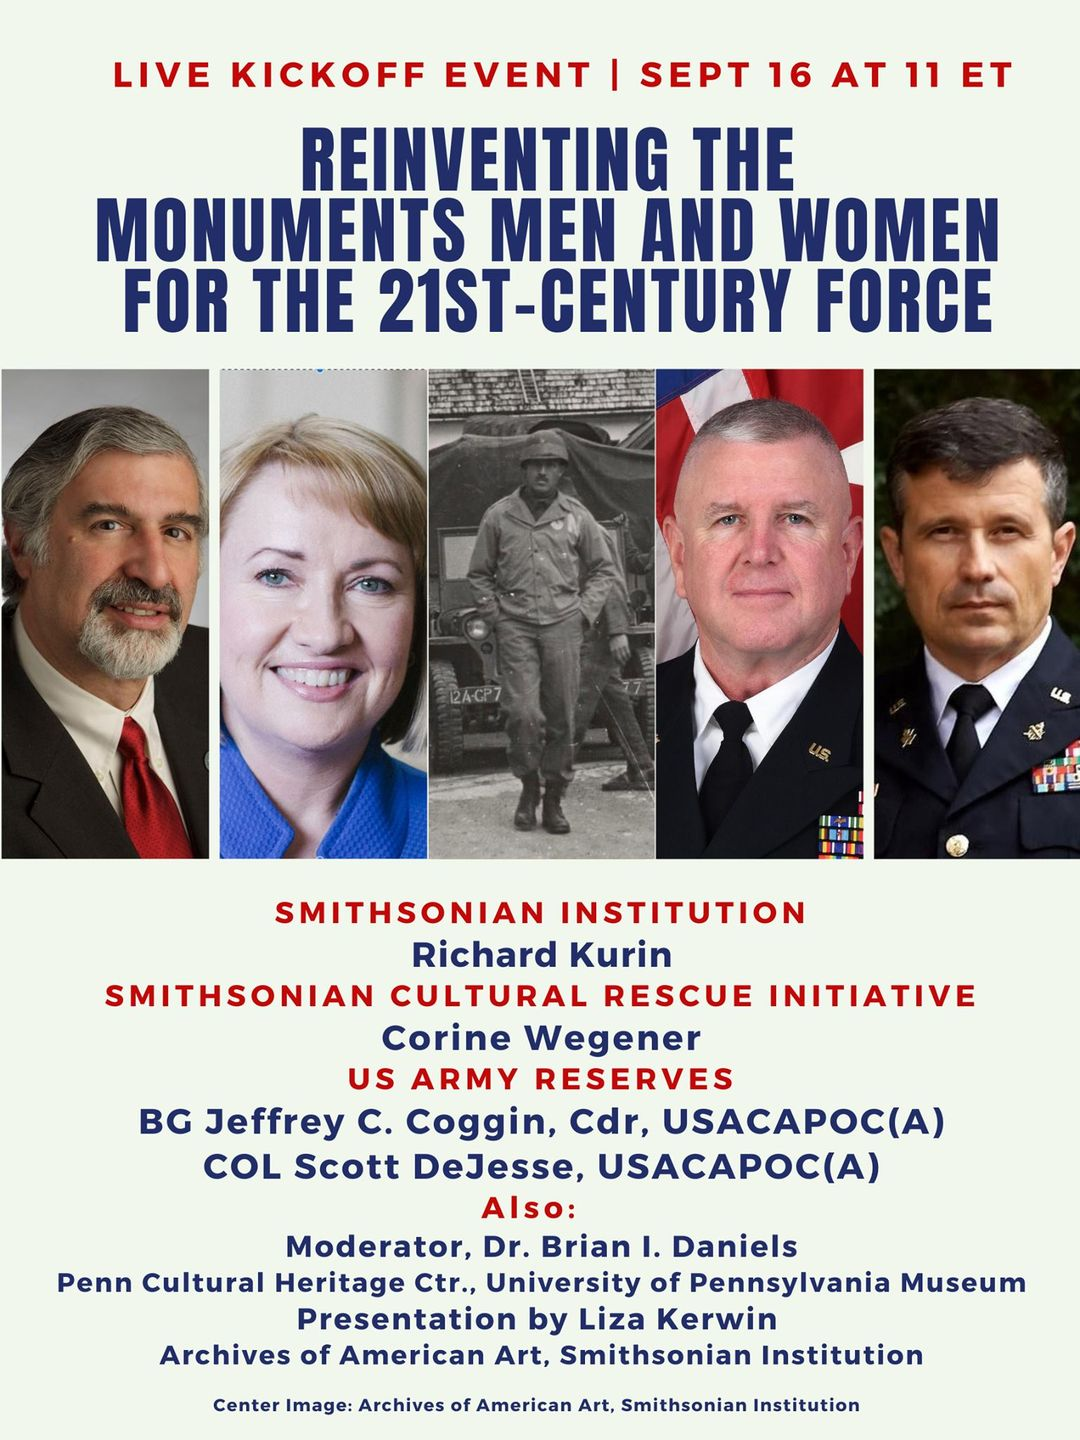 mounments men and women event flyer